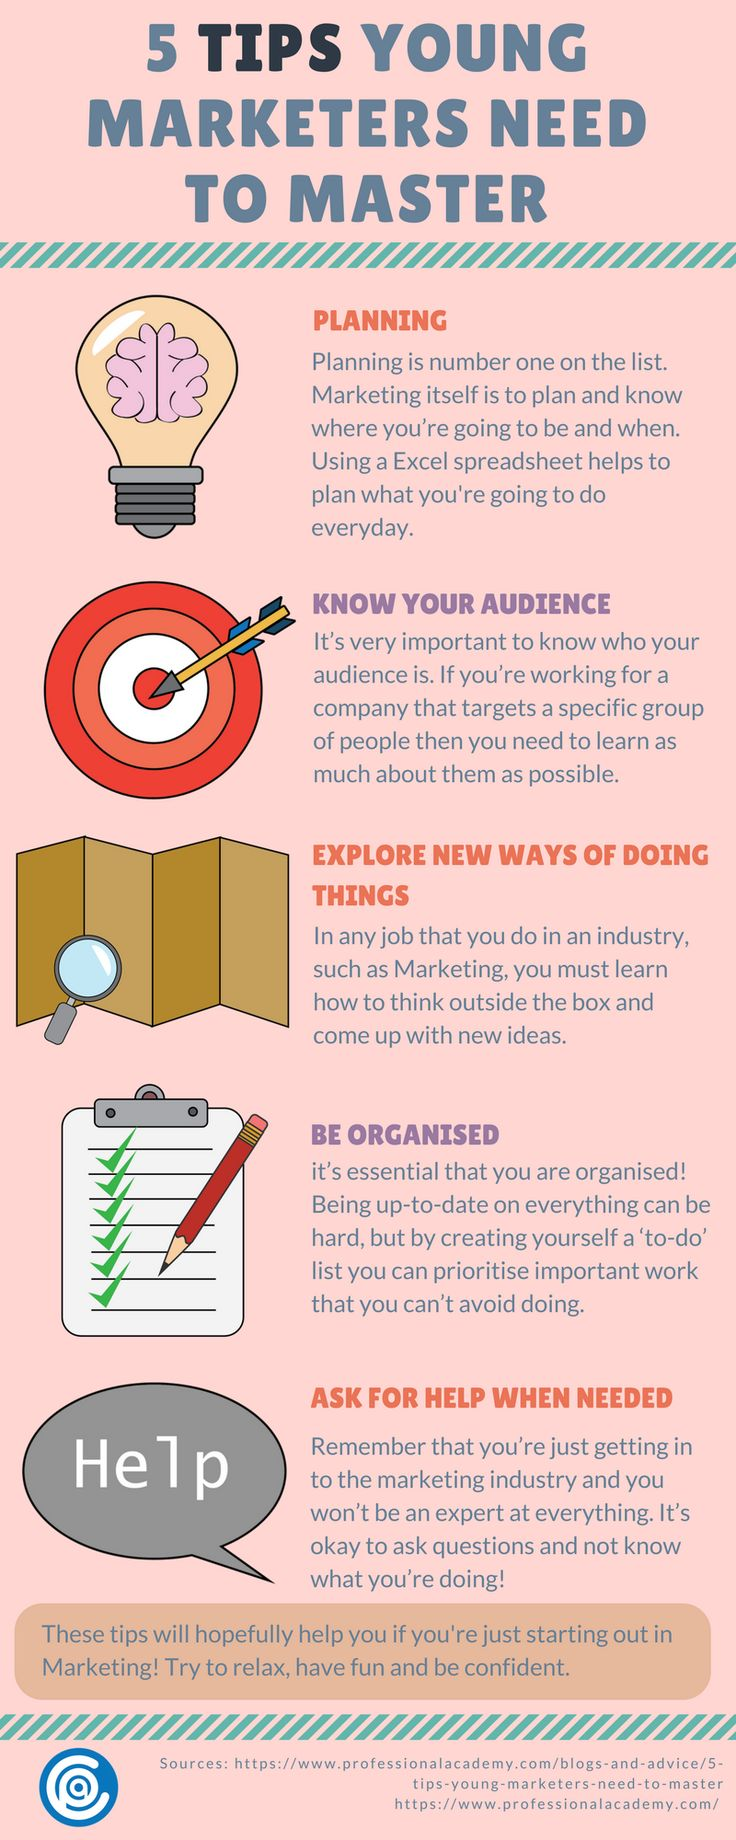 5 Tips Young Marketers Need to Master - Created by www.professionalacademy.com #marketing #digitalmarketing #marketingtips #marketingtipoftheday